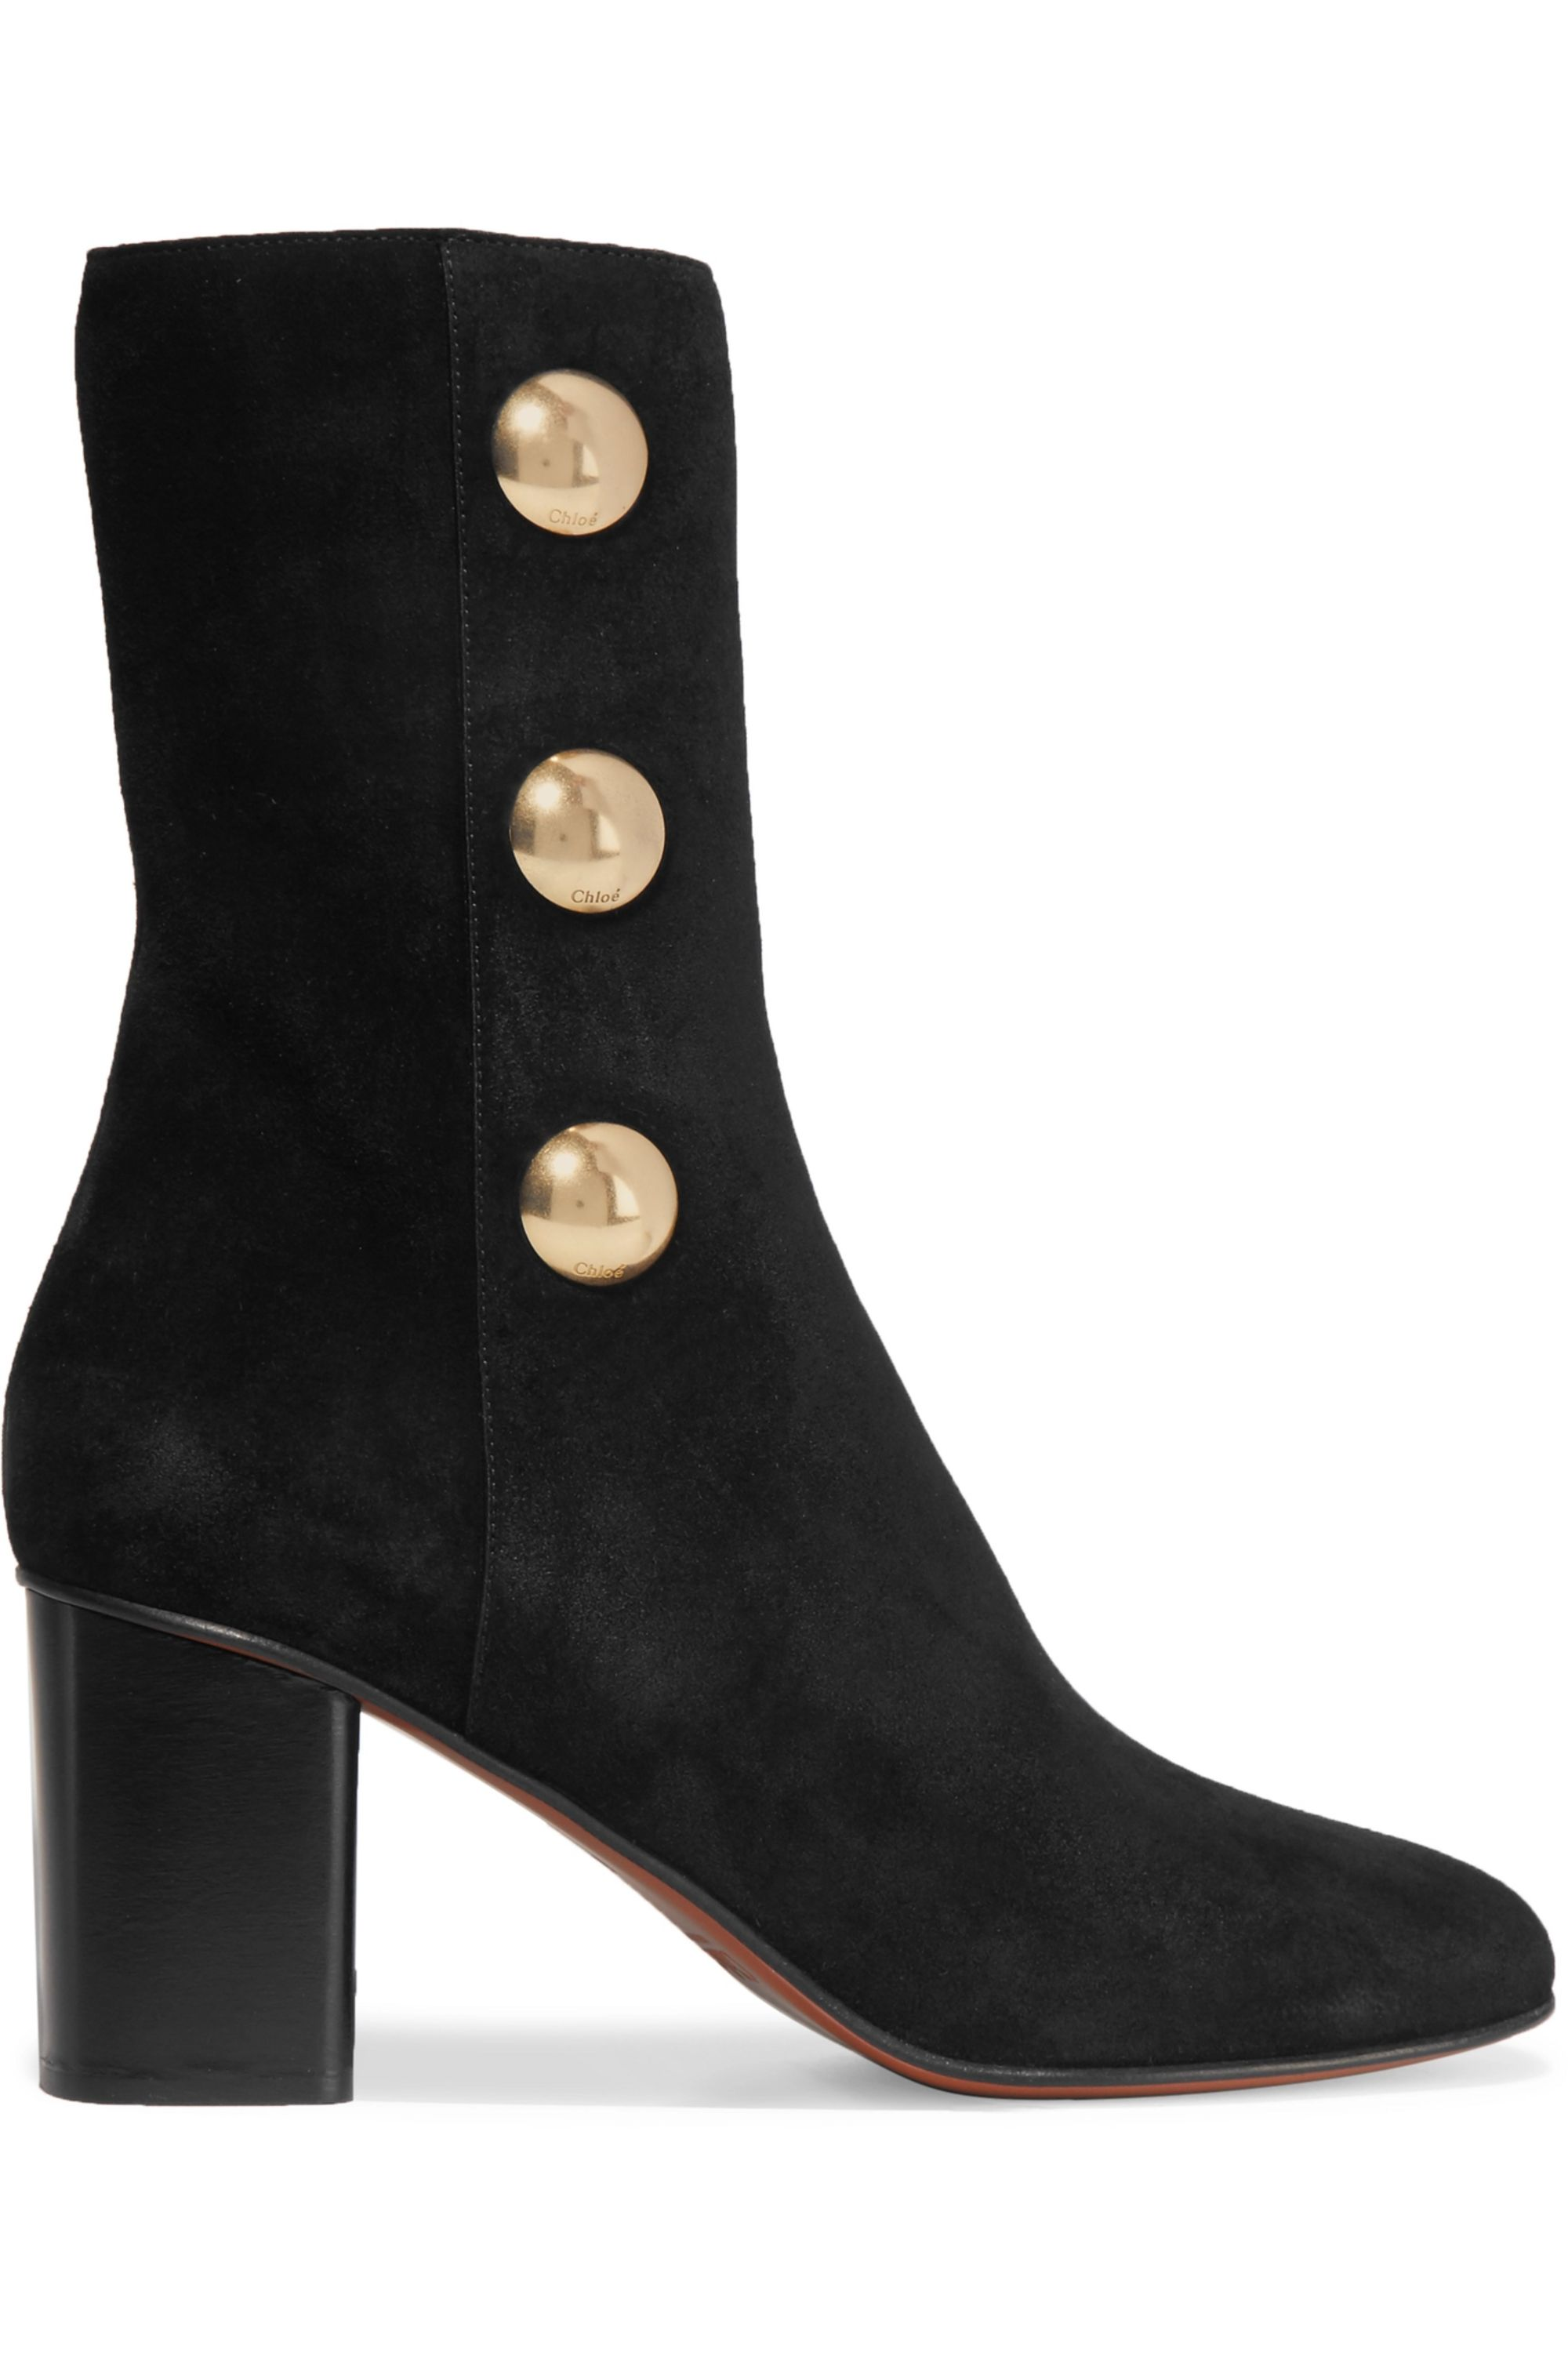 Chloé Orlando embellished suede ankle boots